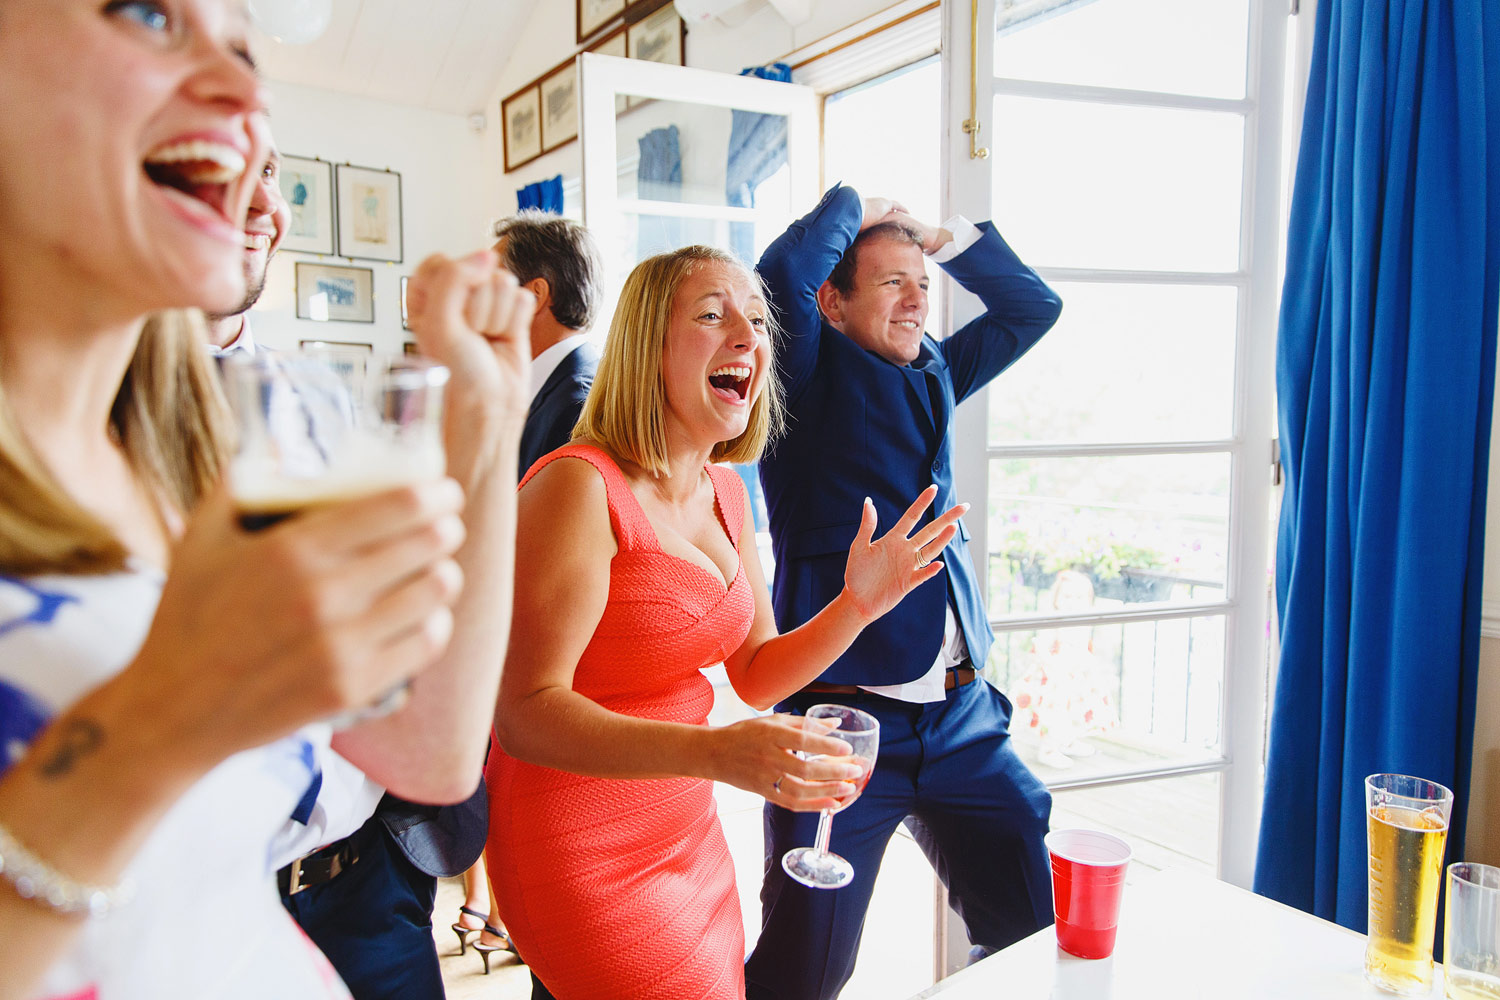 Guests play beer pong at a wedding at Twickenham Rowing Club